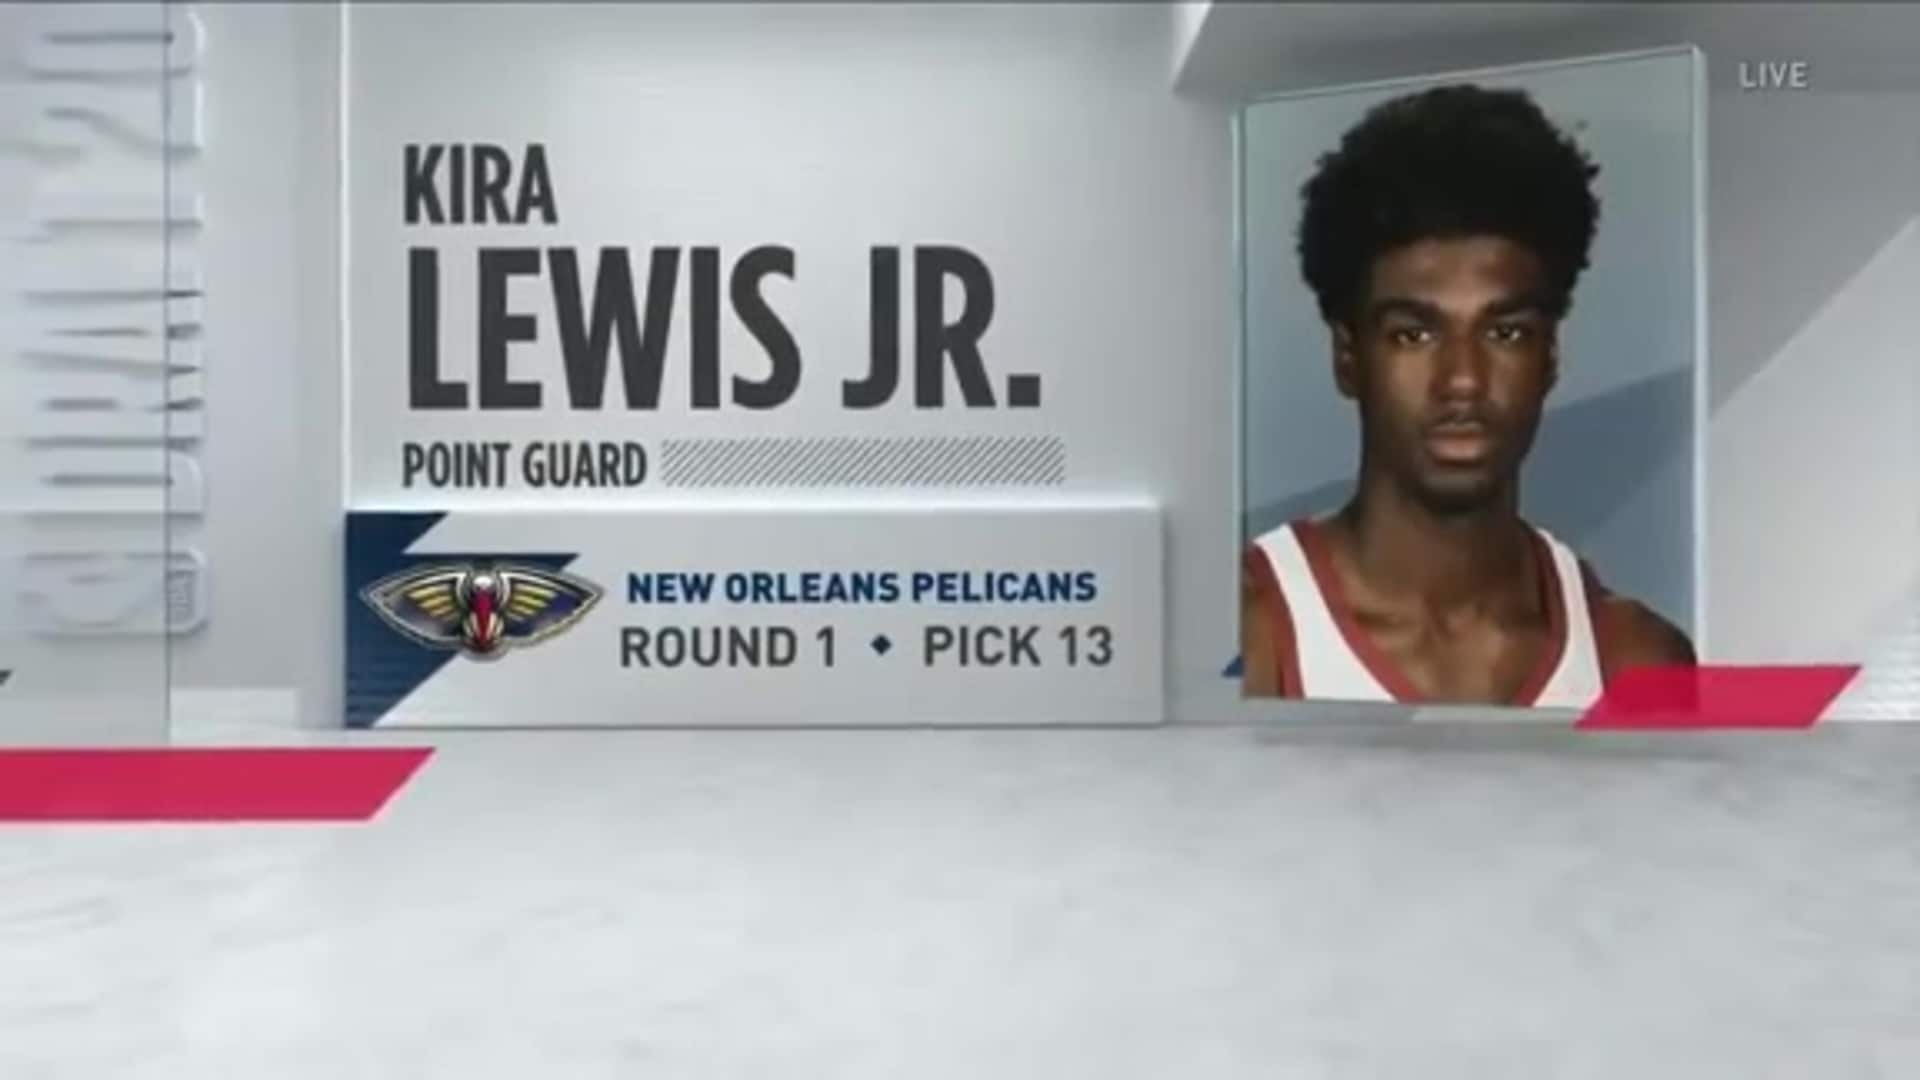 Kira Lewis Jr is announced as the 13th overall pick in the 2020 NBA Draft to the Pelicans